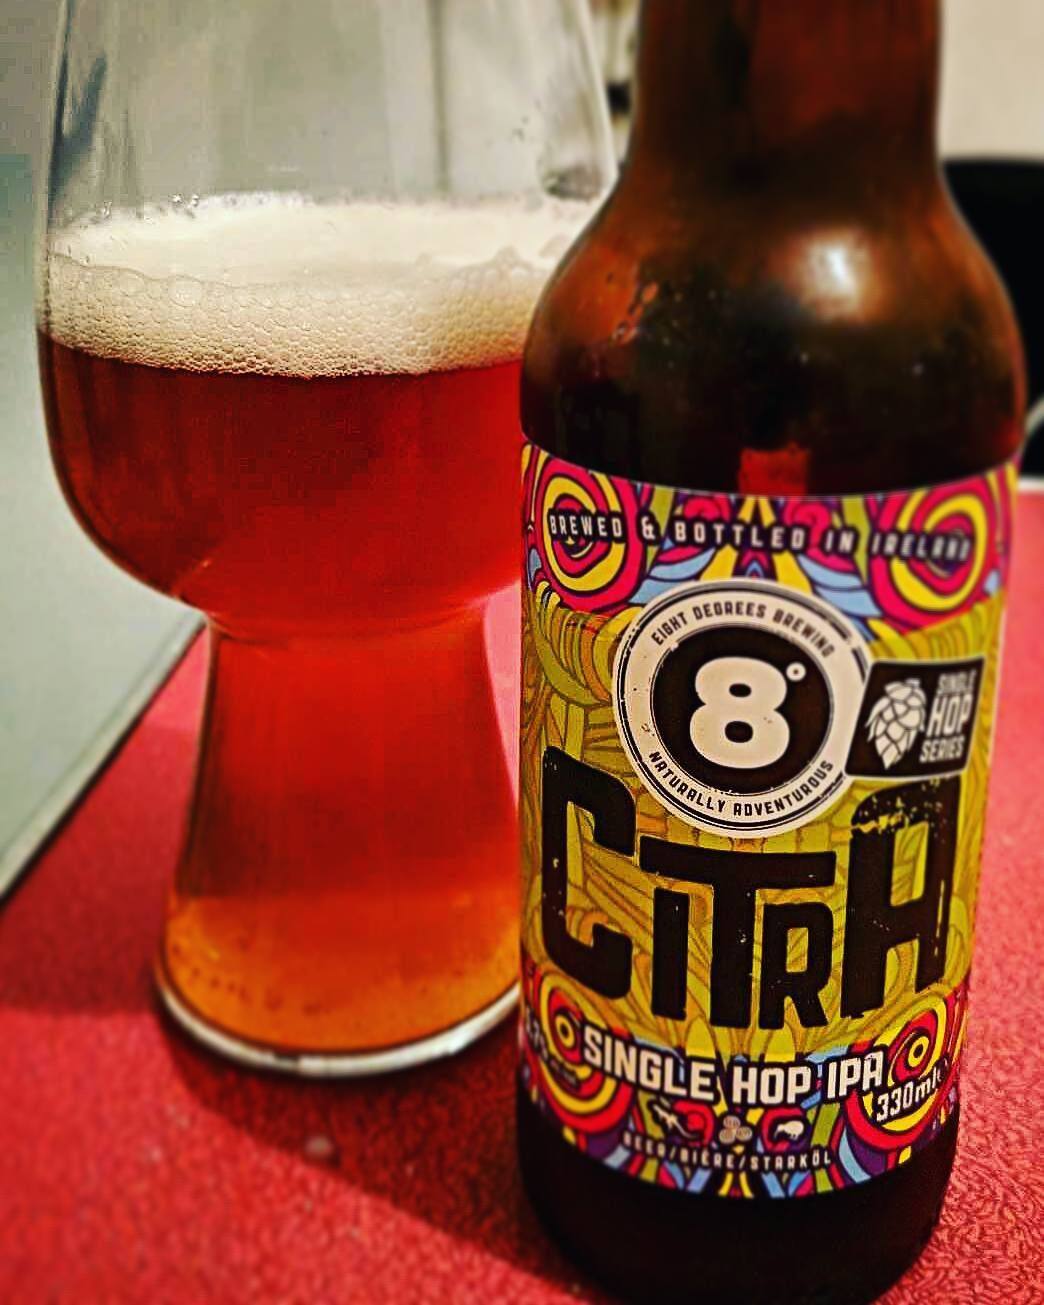 Eightdegreesbrewing Citra Single Hop Ipa Lovely Clean And Crisp With A Nice Orangey Taste Eightdegrees Citra Singlehopipa Beer Pictures Irish Beer Beer Art